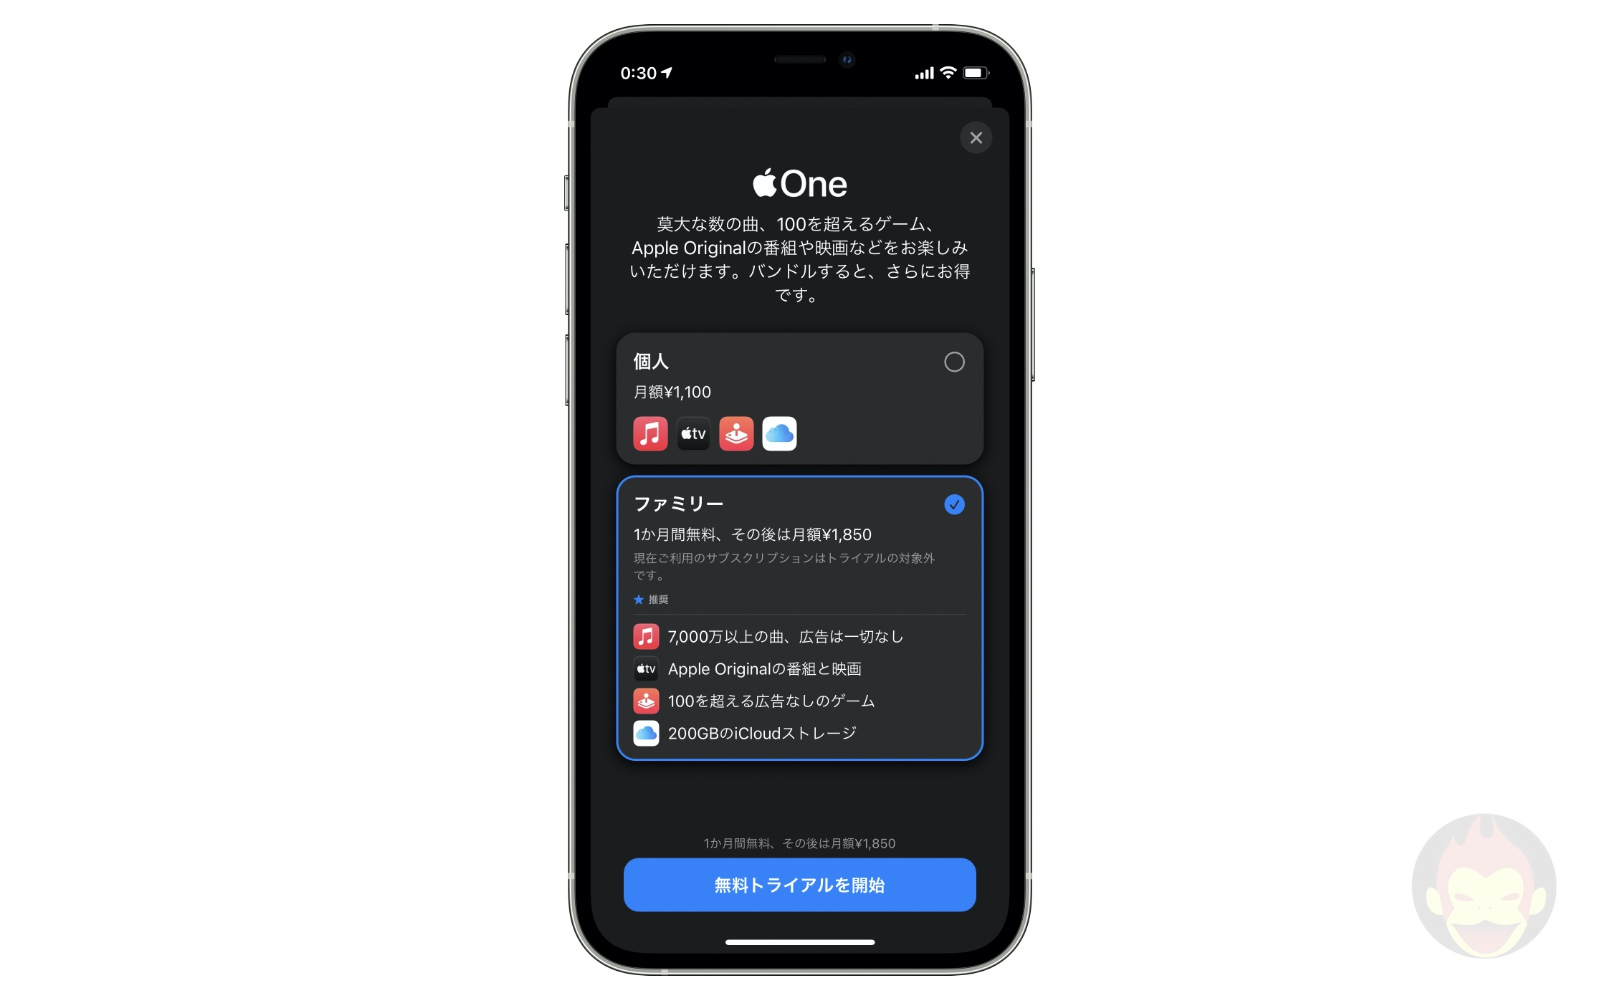 apple-one-japan.jpg